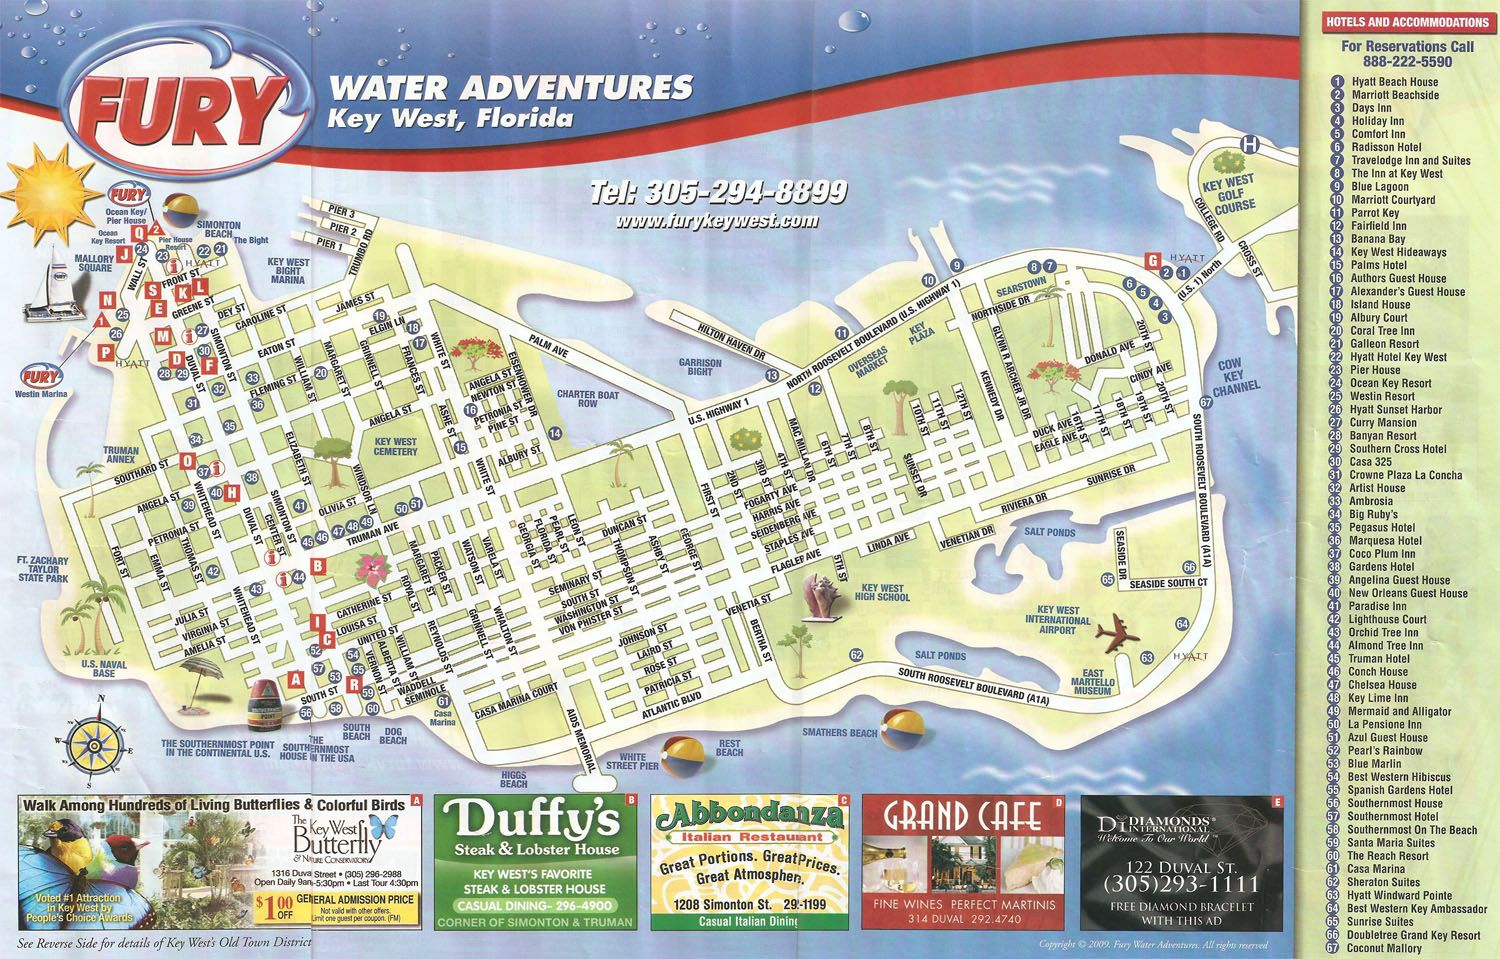 Key West Map Hotels on key west fl map, nassau hotel map, key west ferry map, key west marriott beachside hotel, doubletree grand key resort hotel map, islamorada hotel map, south beach hotel map, las vegas hotel map, rochester hotel map, eugene hotel map, key west bar map, key west bike map, marriott key west map, marco island hotel map, key west city map, key west resort map, fort lauderdale hotel map, key west map pdf, st petersburg hotel map, key west golf course map,